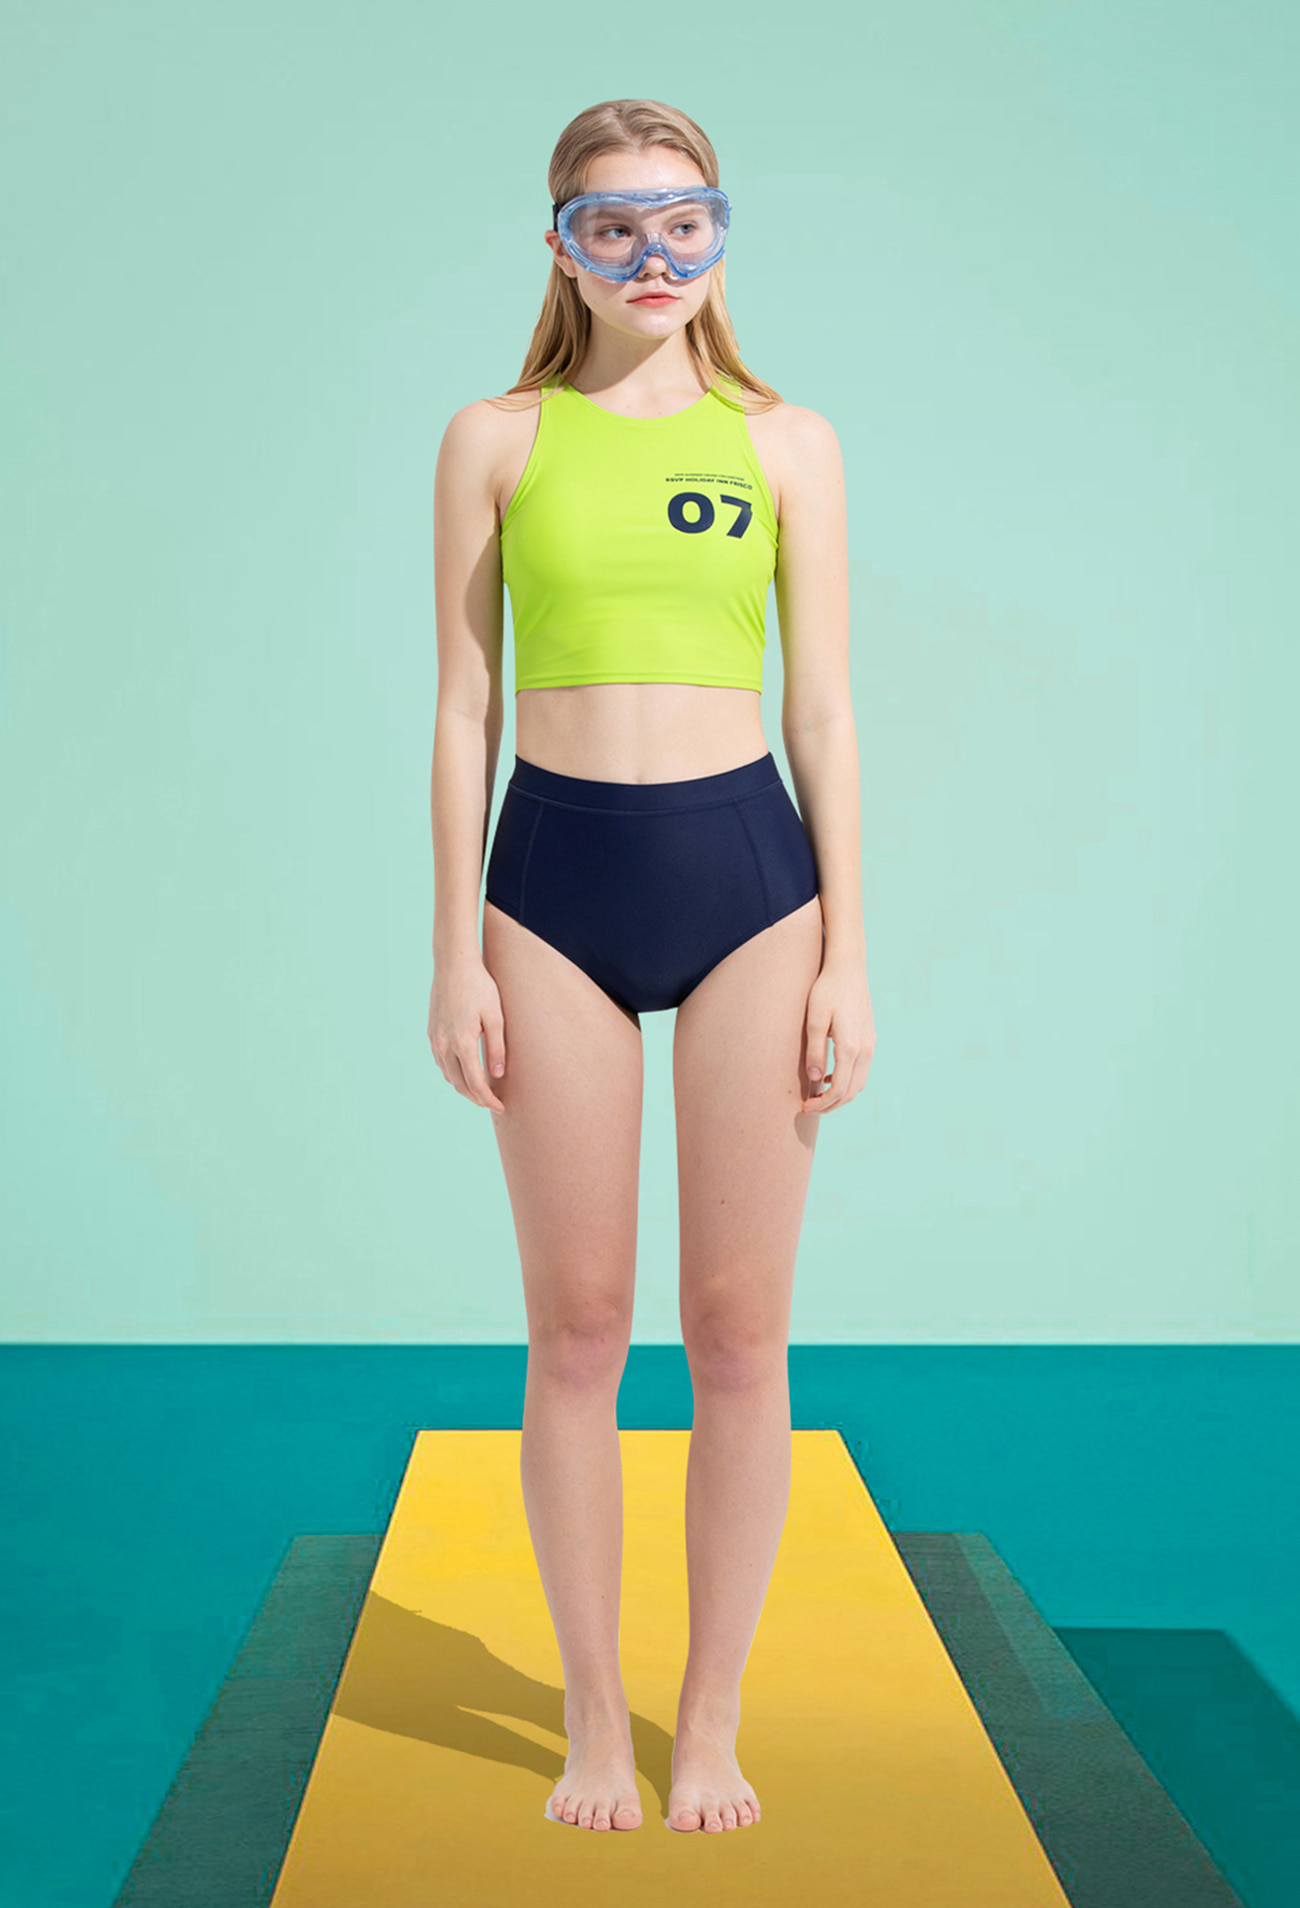 07 NUMBERING SWIM SUIT TOP (LIME)